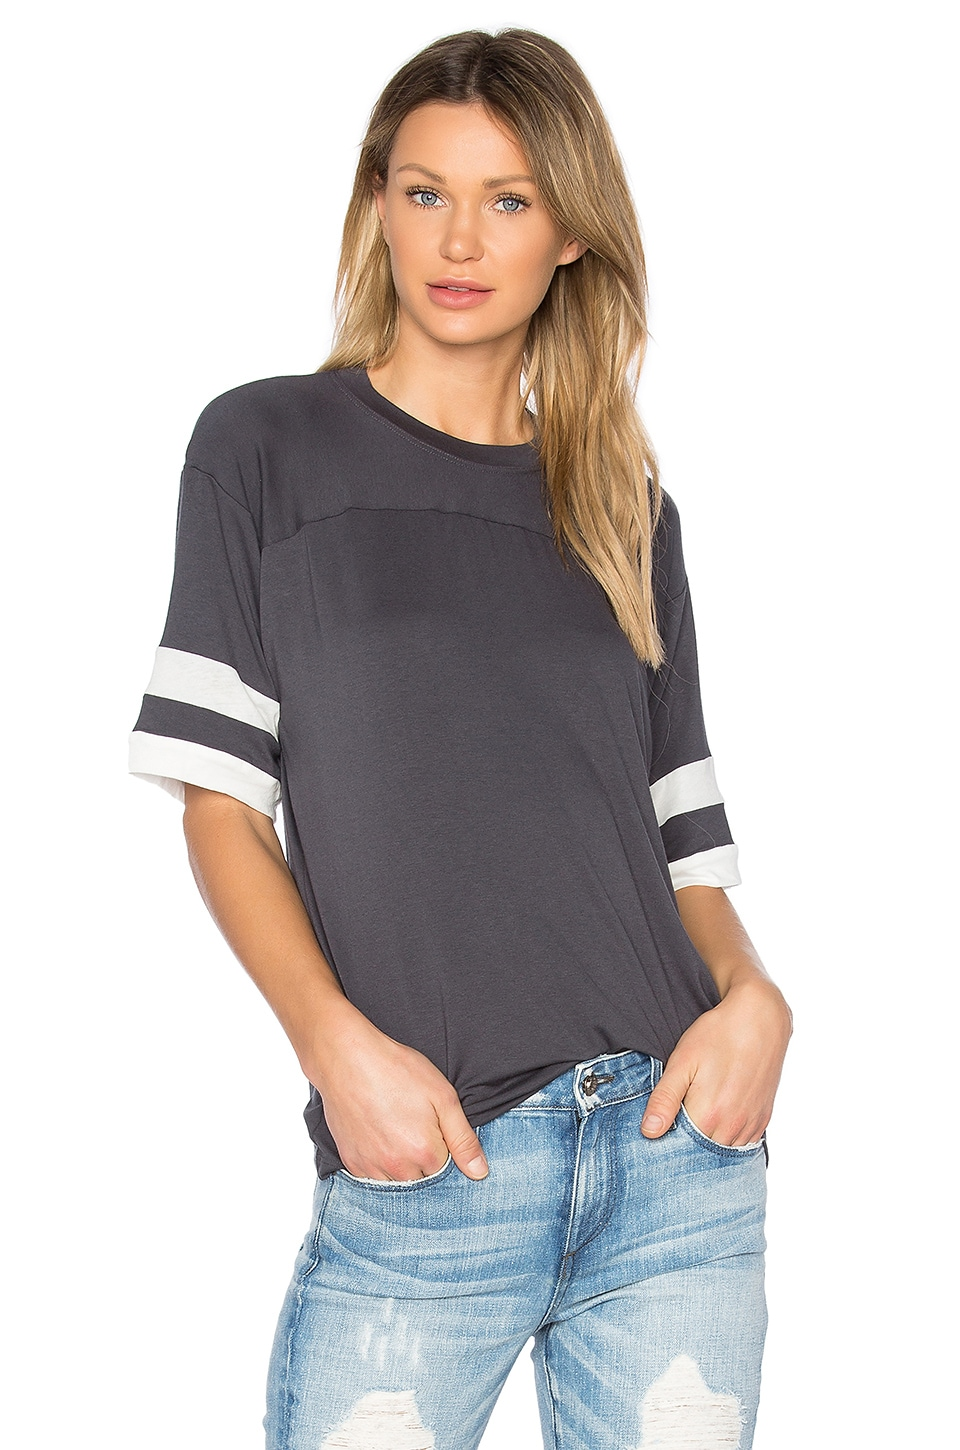 Athletic Tee by A Fine Line